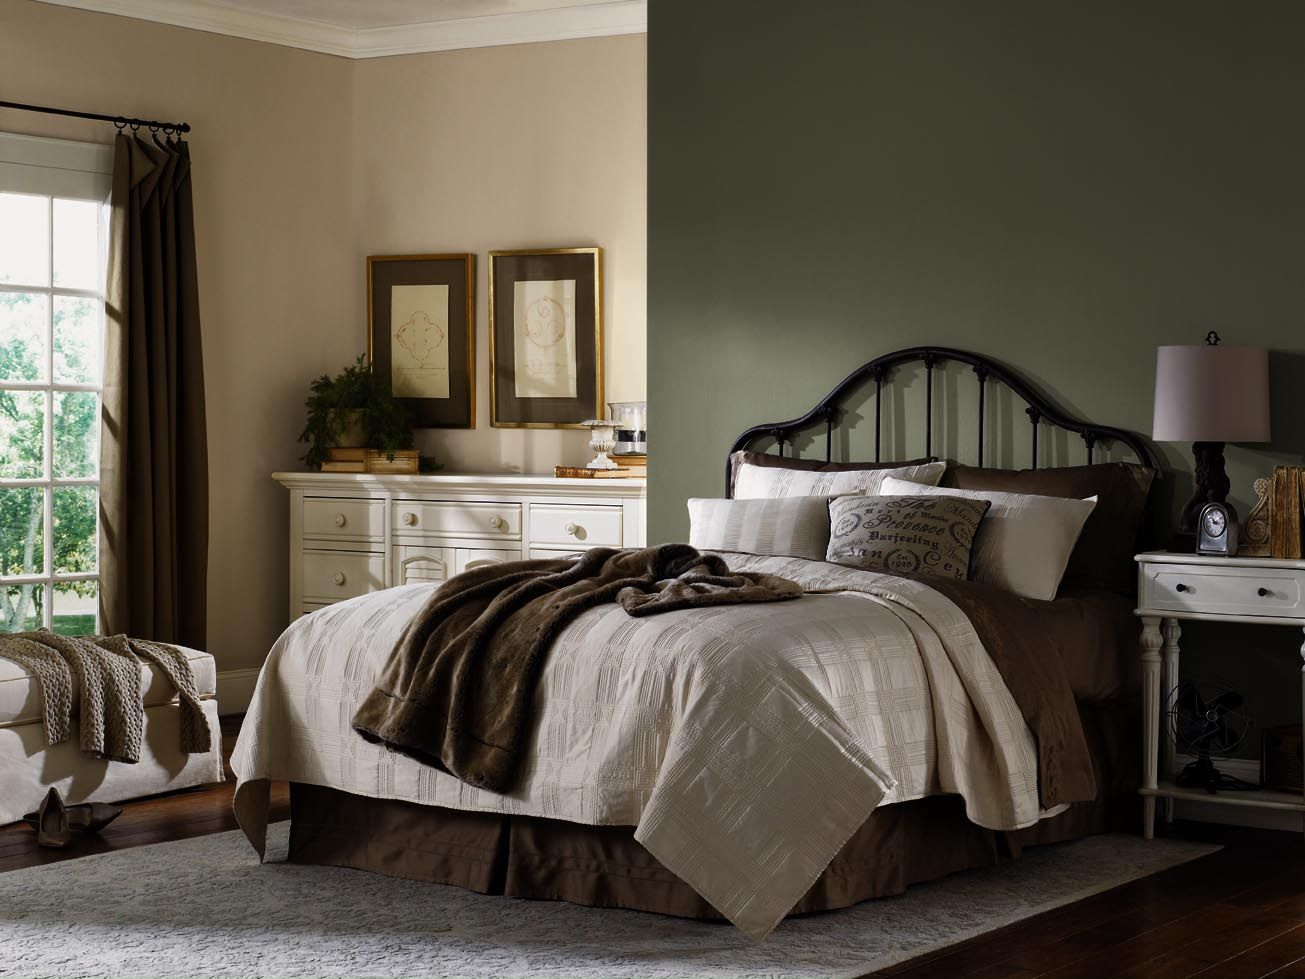 Hgtv home by sherwin williams neutral nuance for Sherwin williams neutral colors